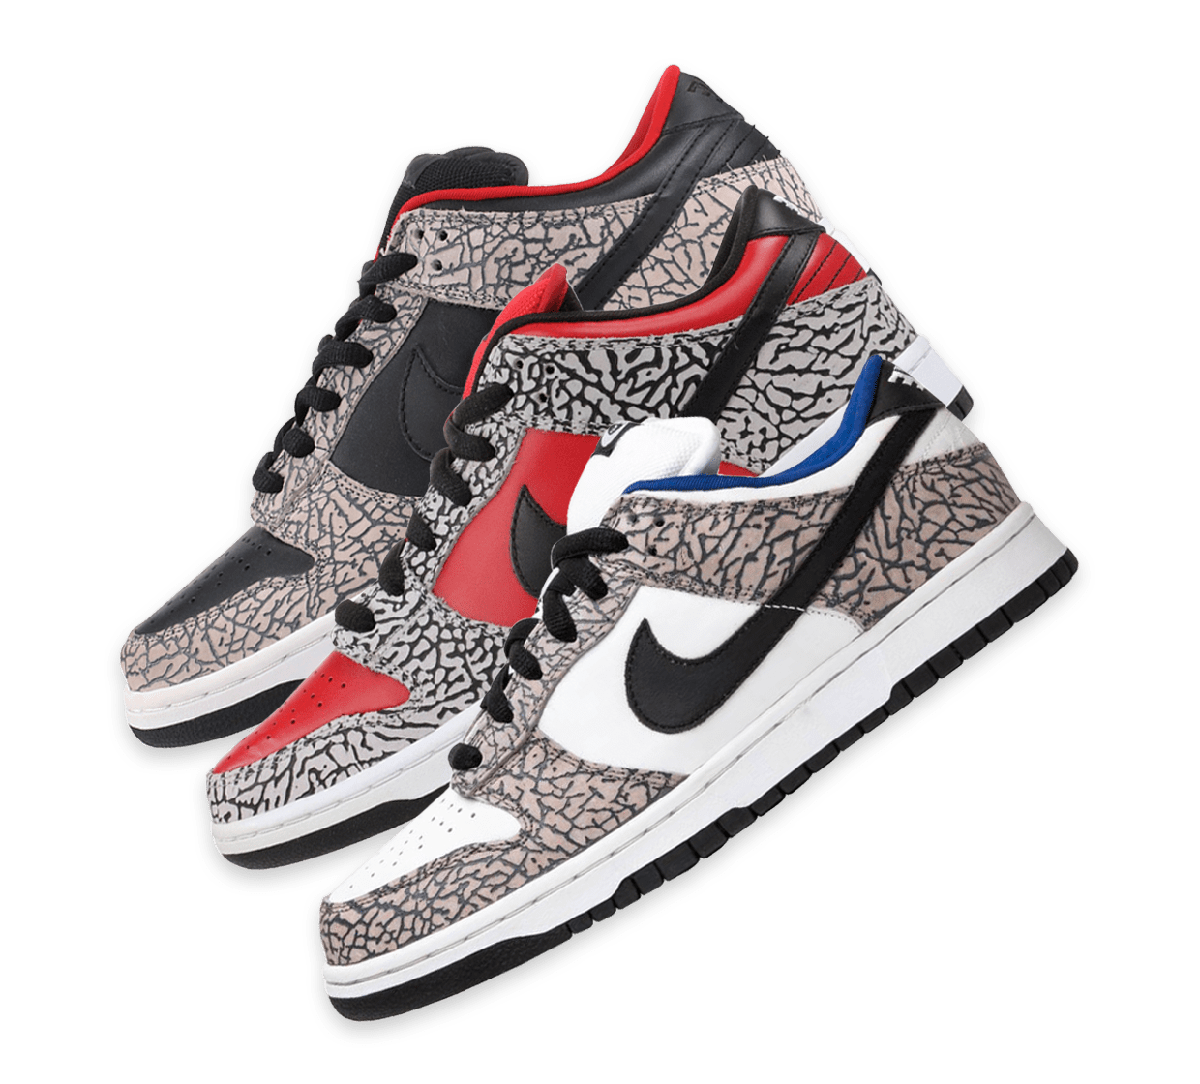 Nike SB Dunk Low Supreme Cement Collection Image